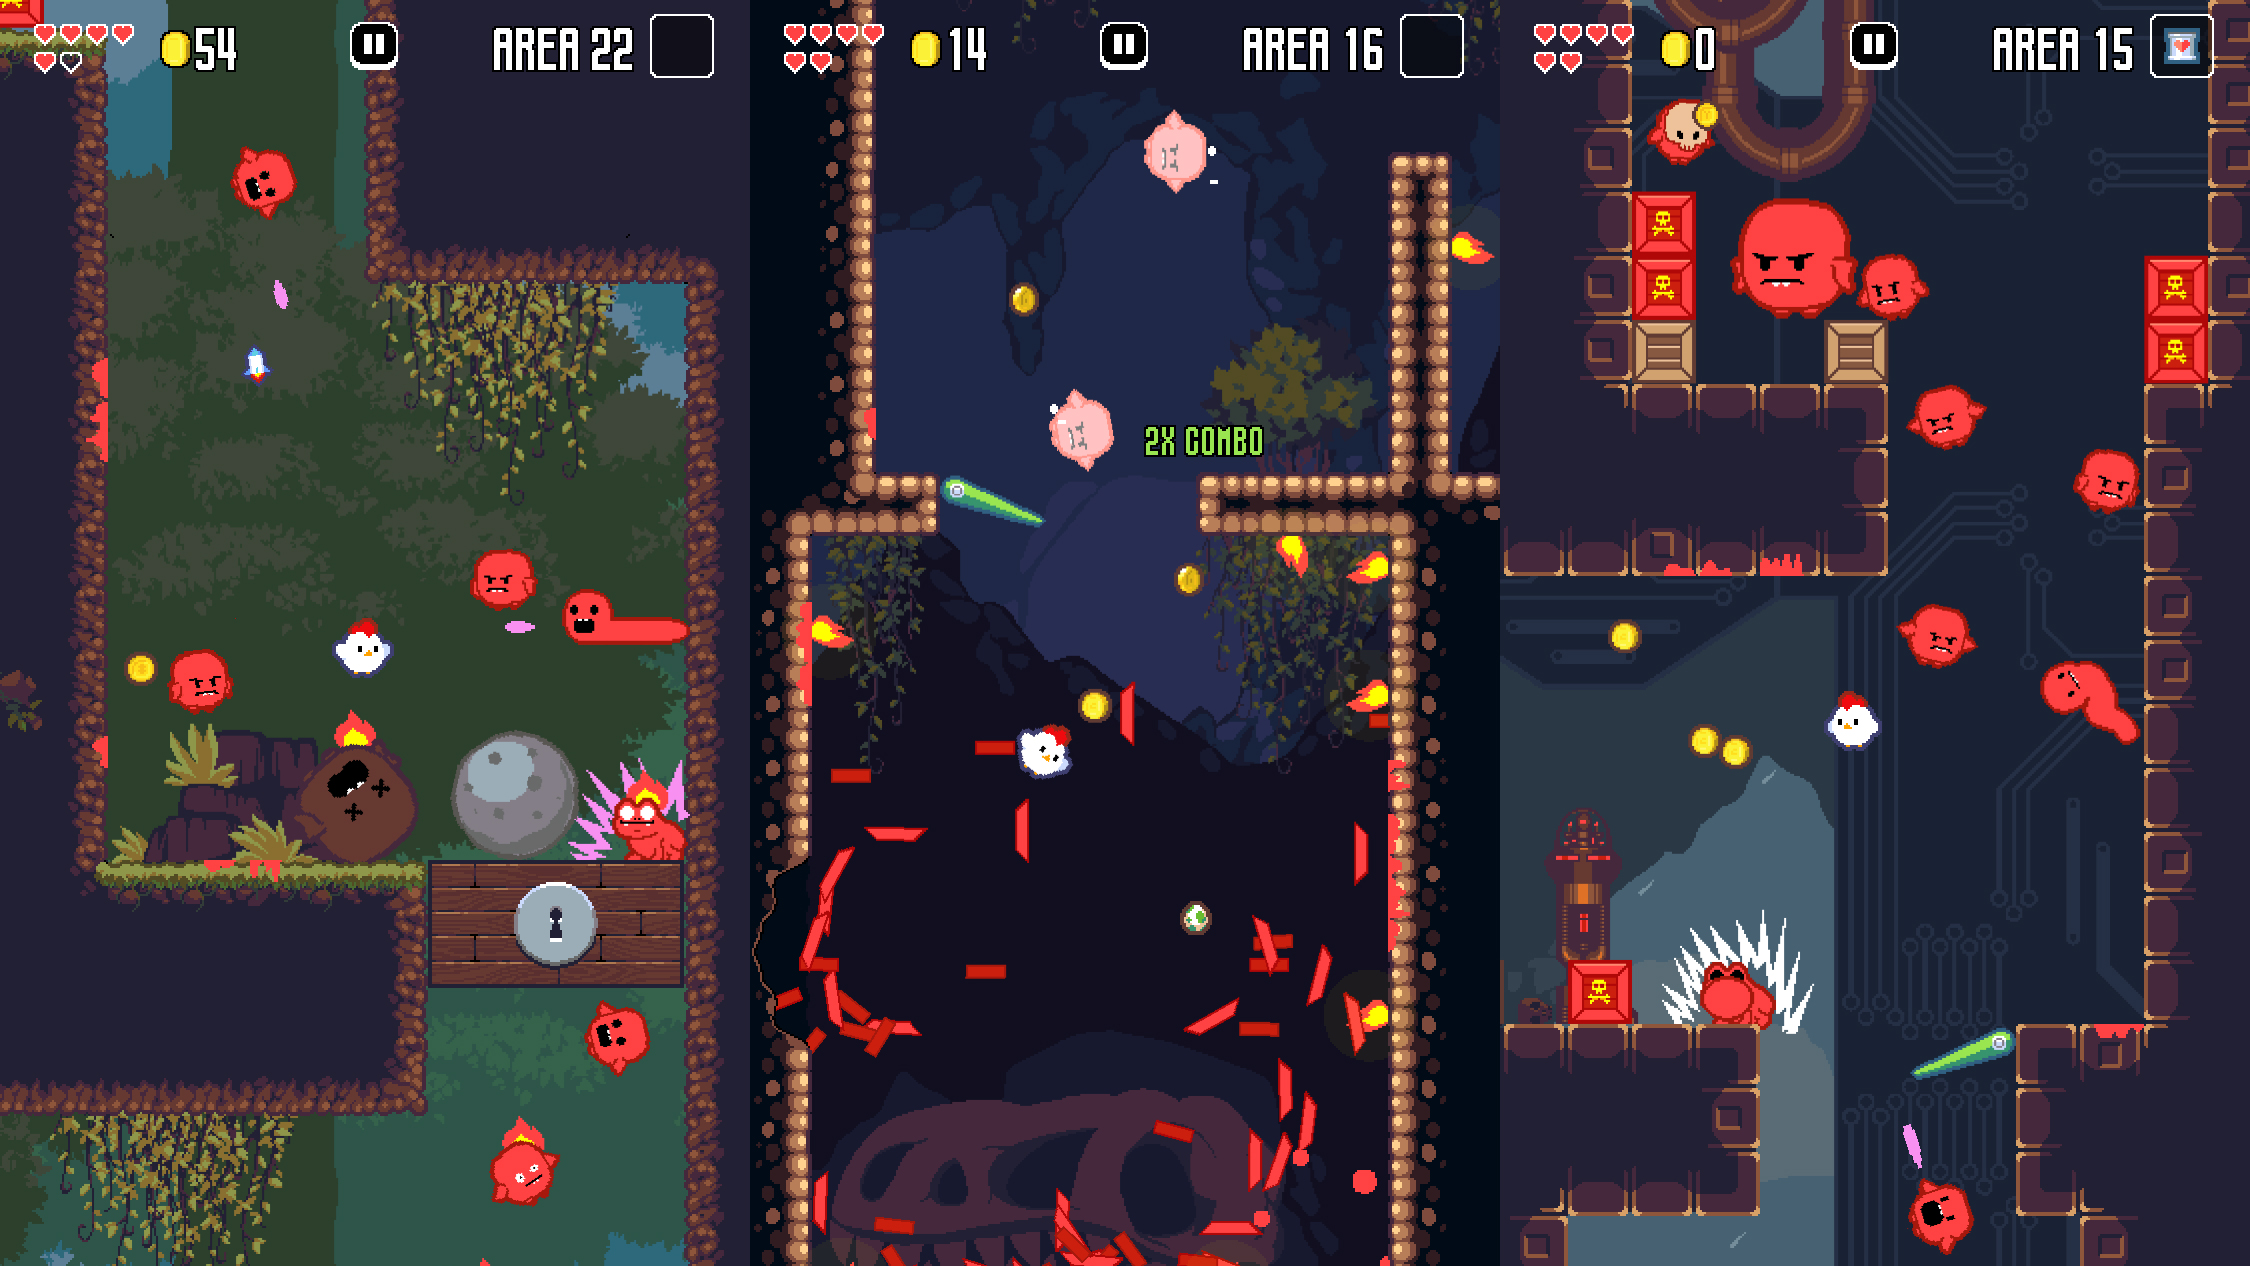 UpBSxaoLFziSEXjmiRr52h - The best free Android games 2019